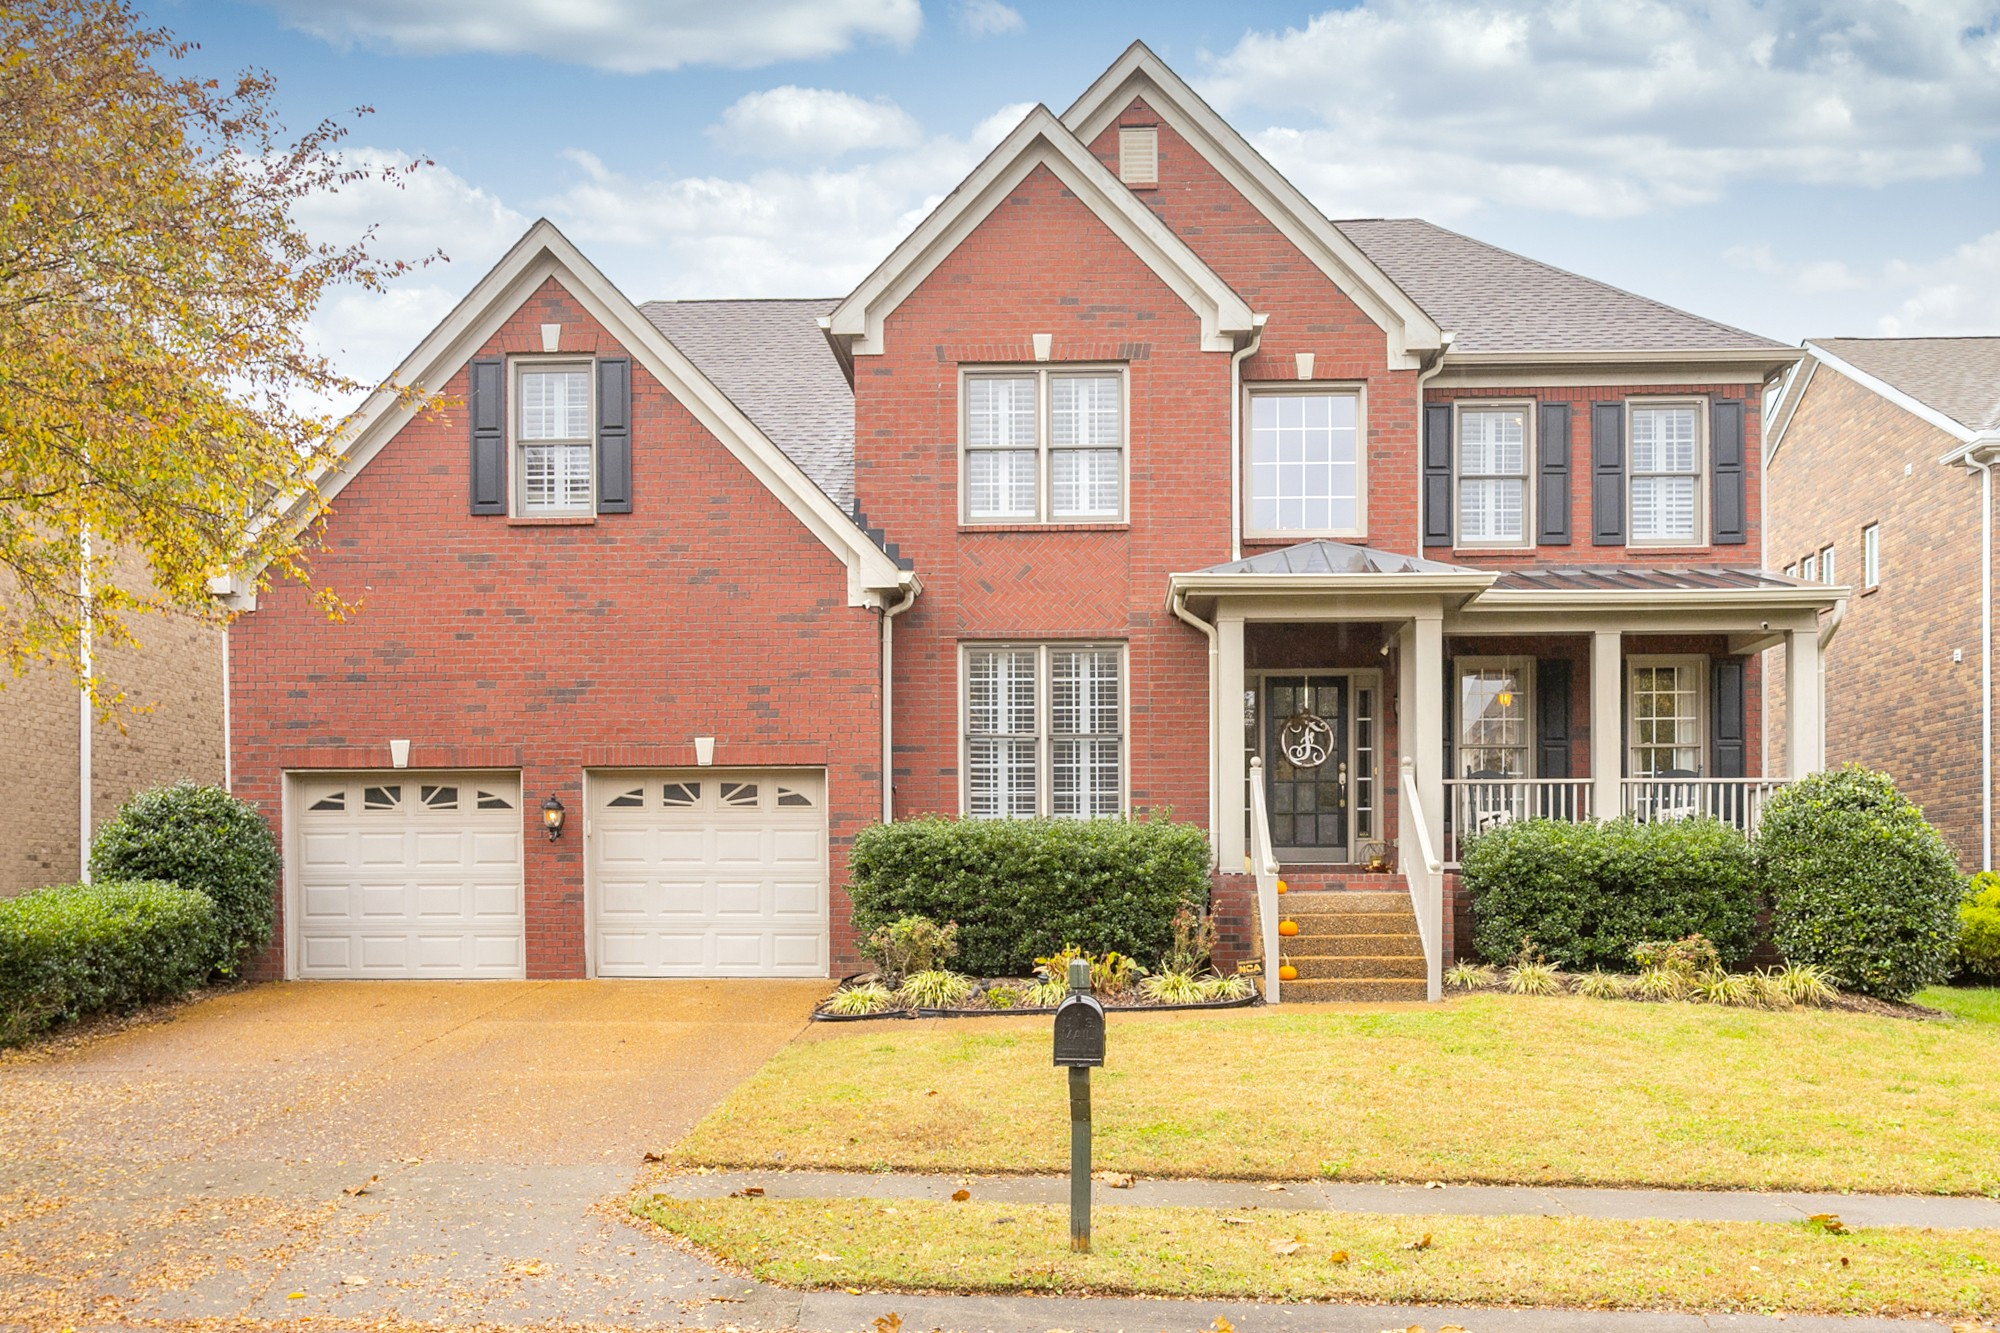 3251 Locust Holw Property Photo - Nolensville, TN real estate listing